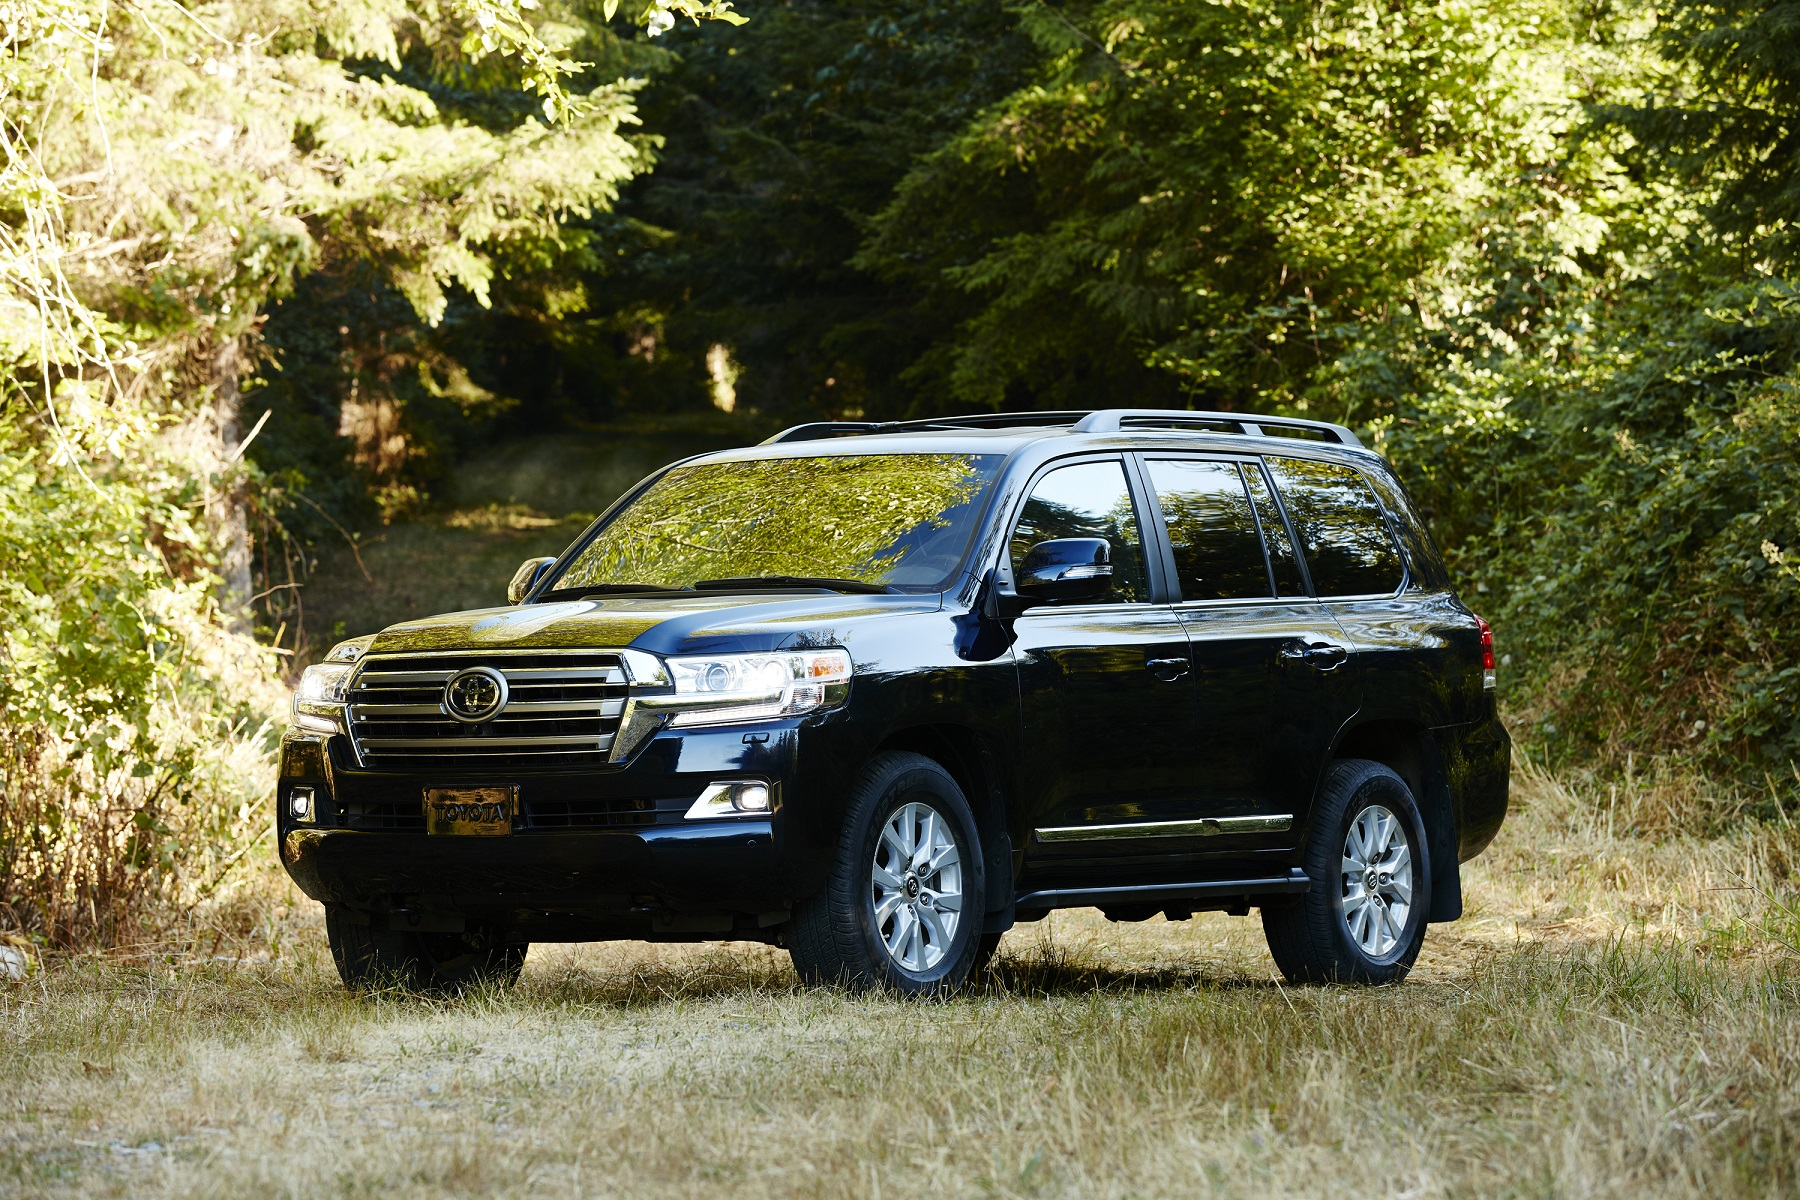 Manufacturer photo: The Land Cruiser is Toyota's ultimate-capability, ultimate-luxury SUV, and for 2016 Toyota is ratcheting up the meaning of that term